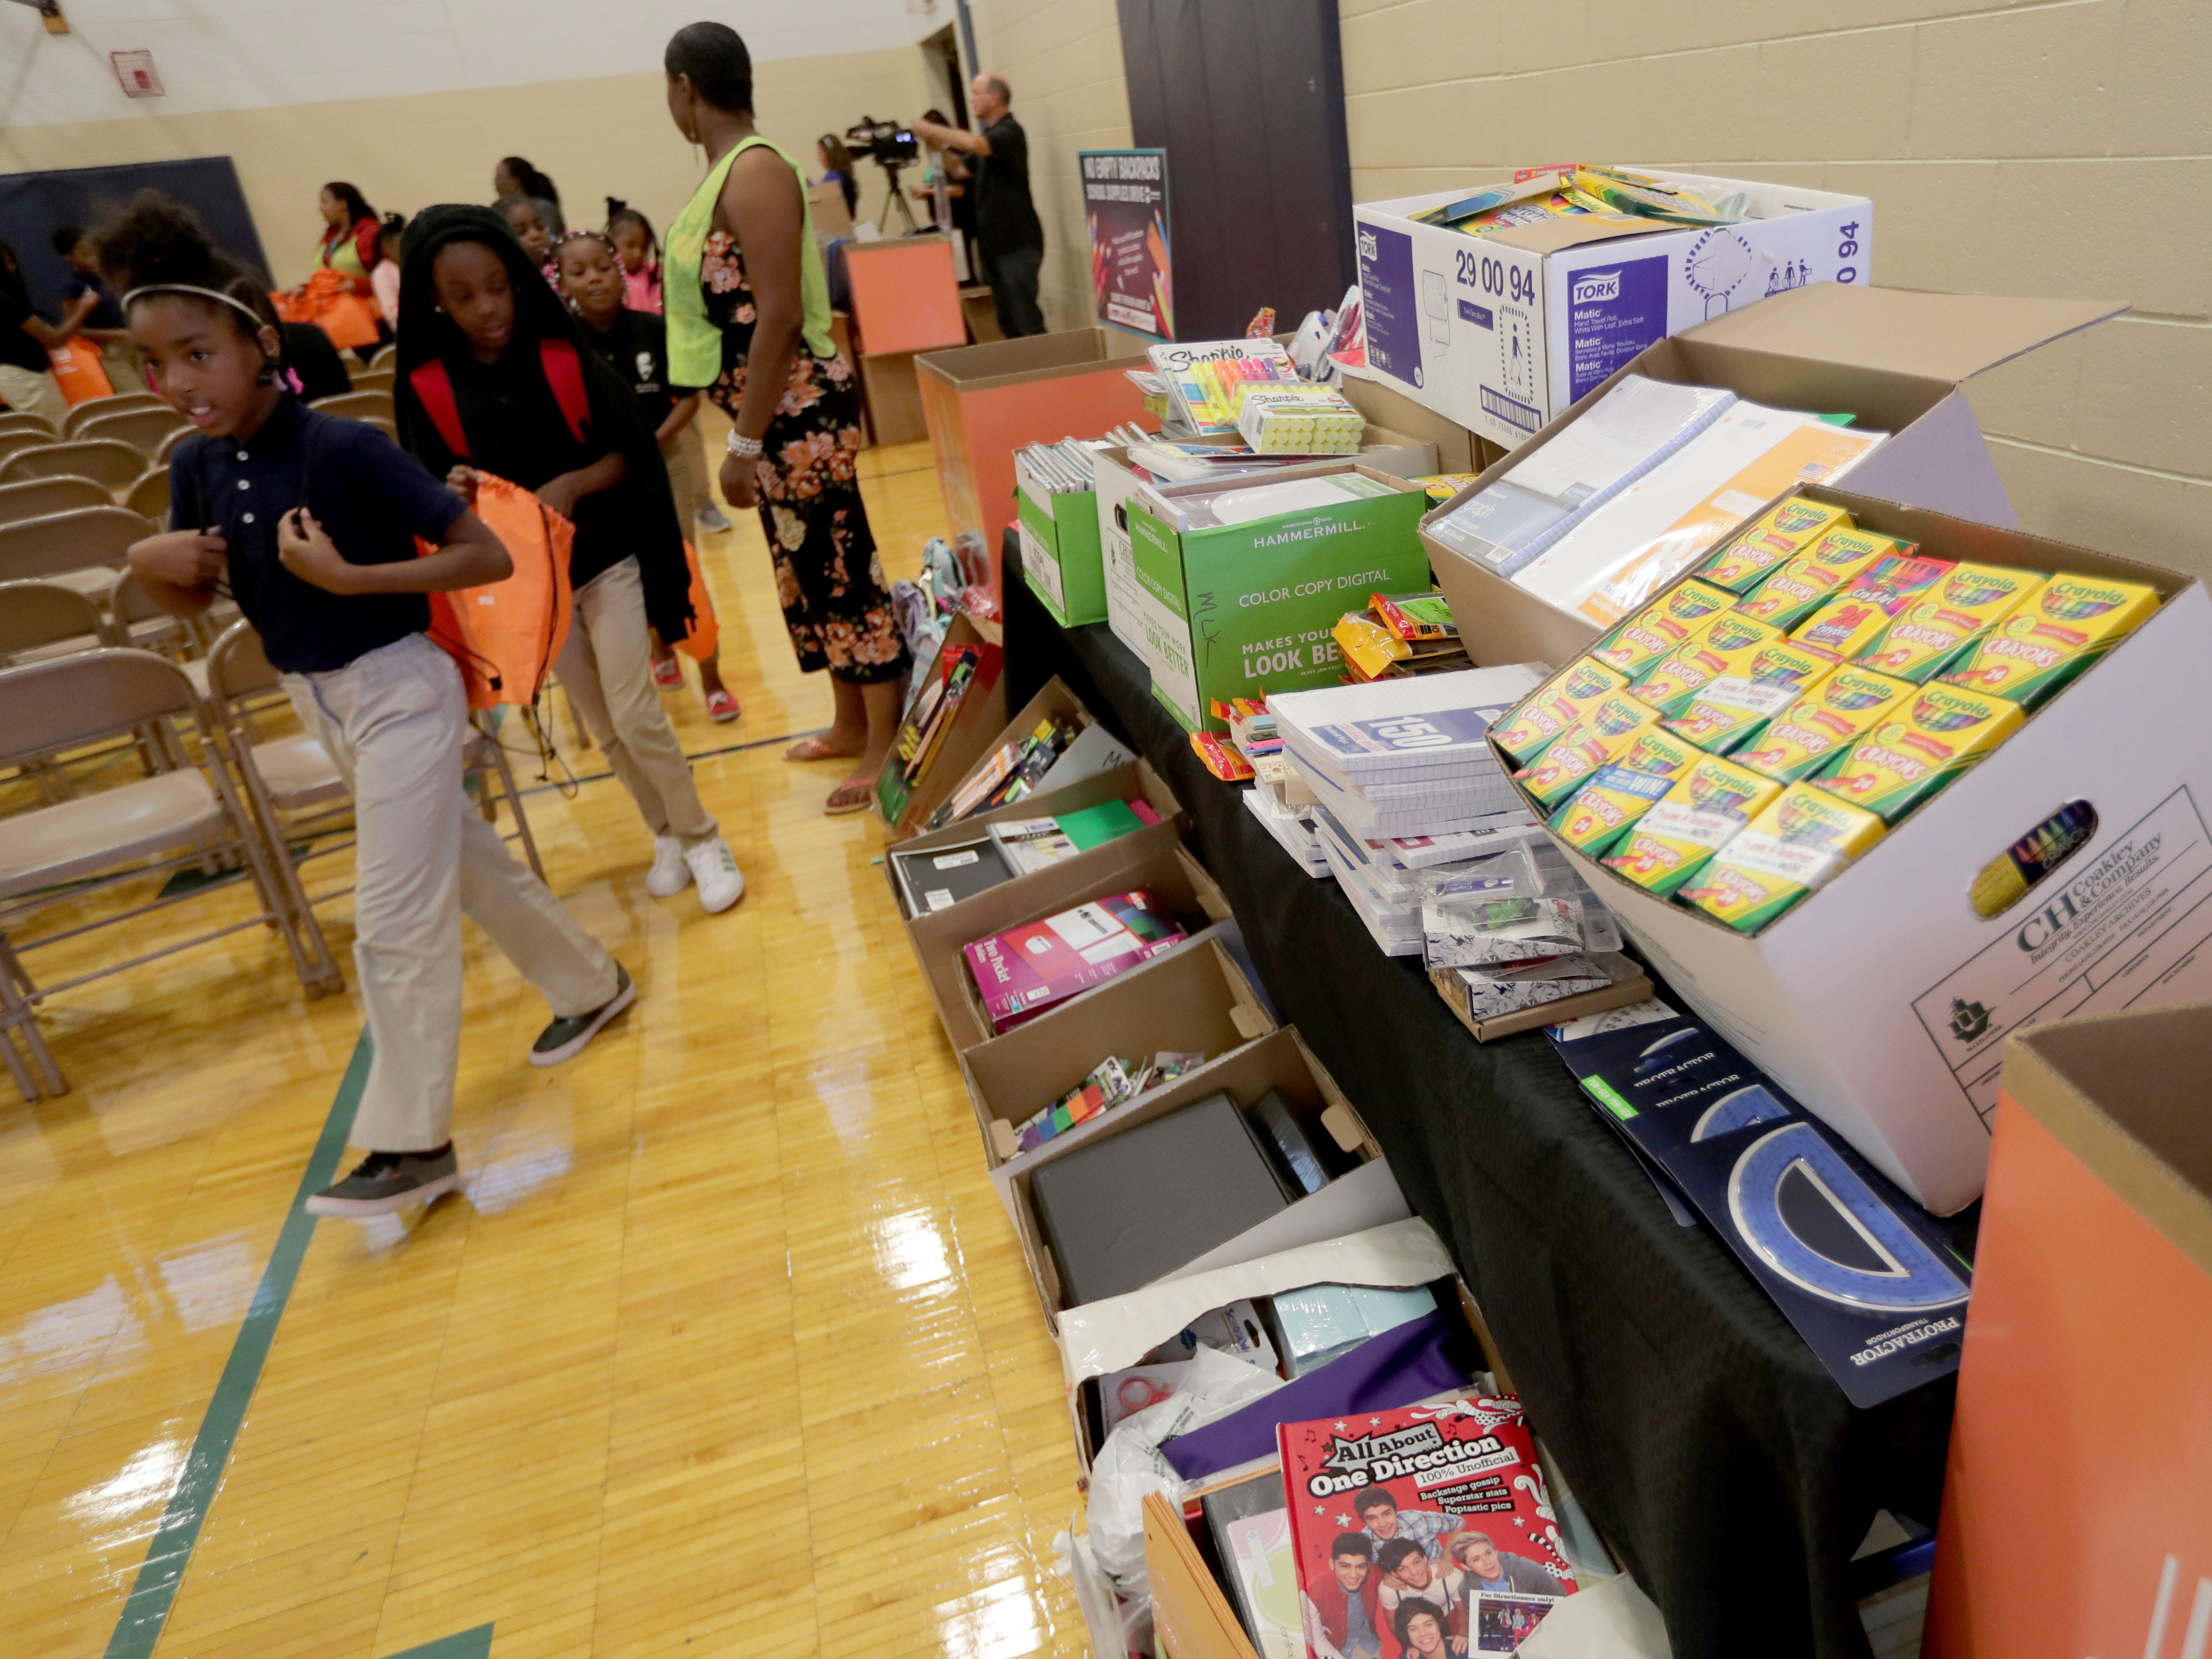 Thousands of school supplies were donated for students during the No Empty Backpacks drive.